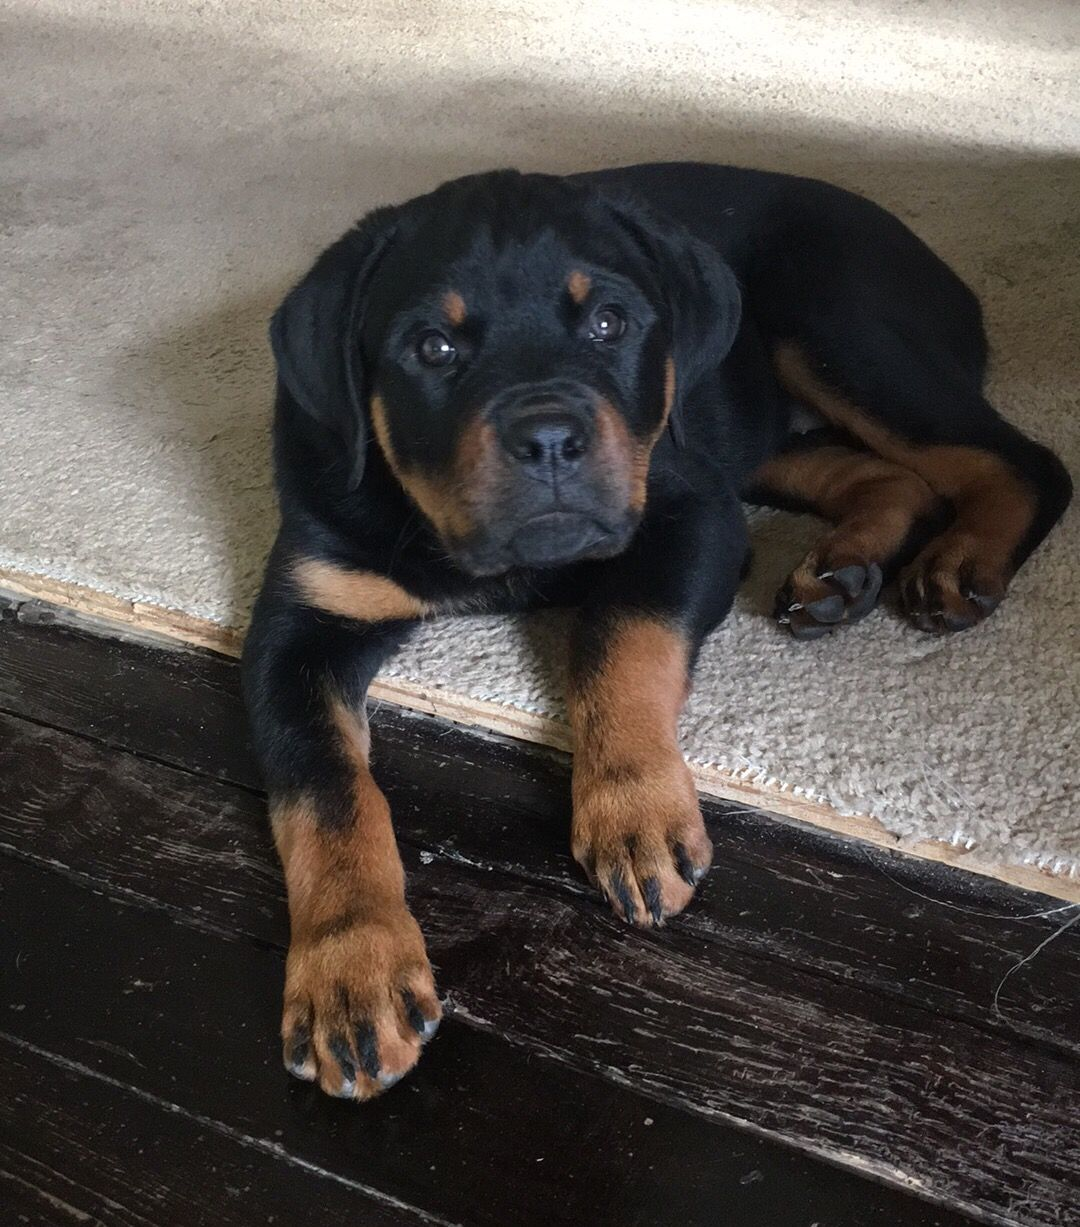 My Female Rottweiler At 12 Weeks Rottweiler Animals Friends